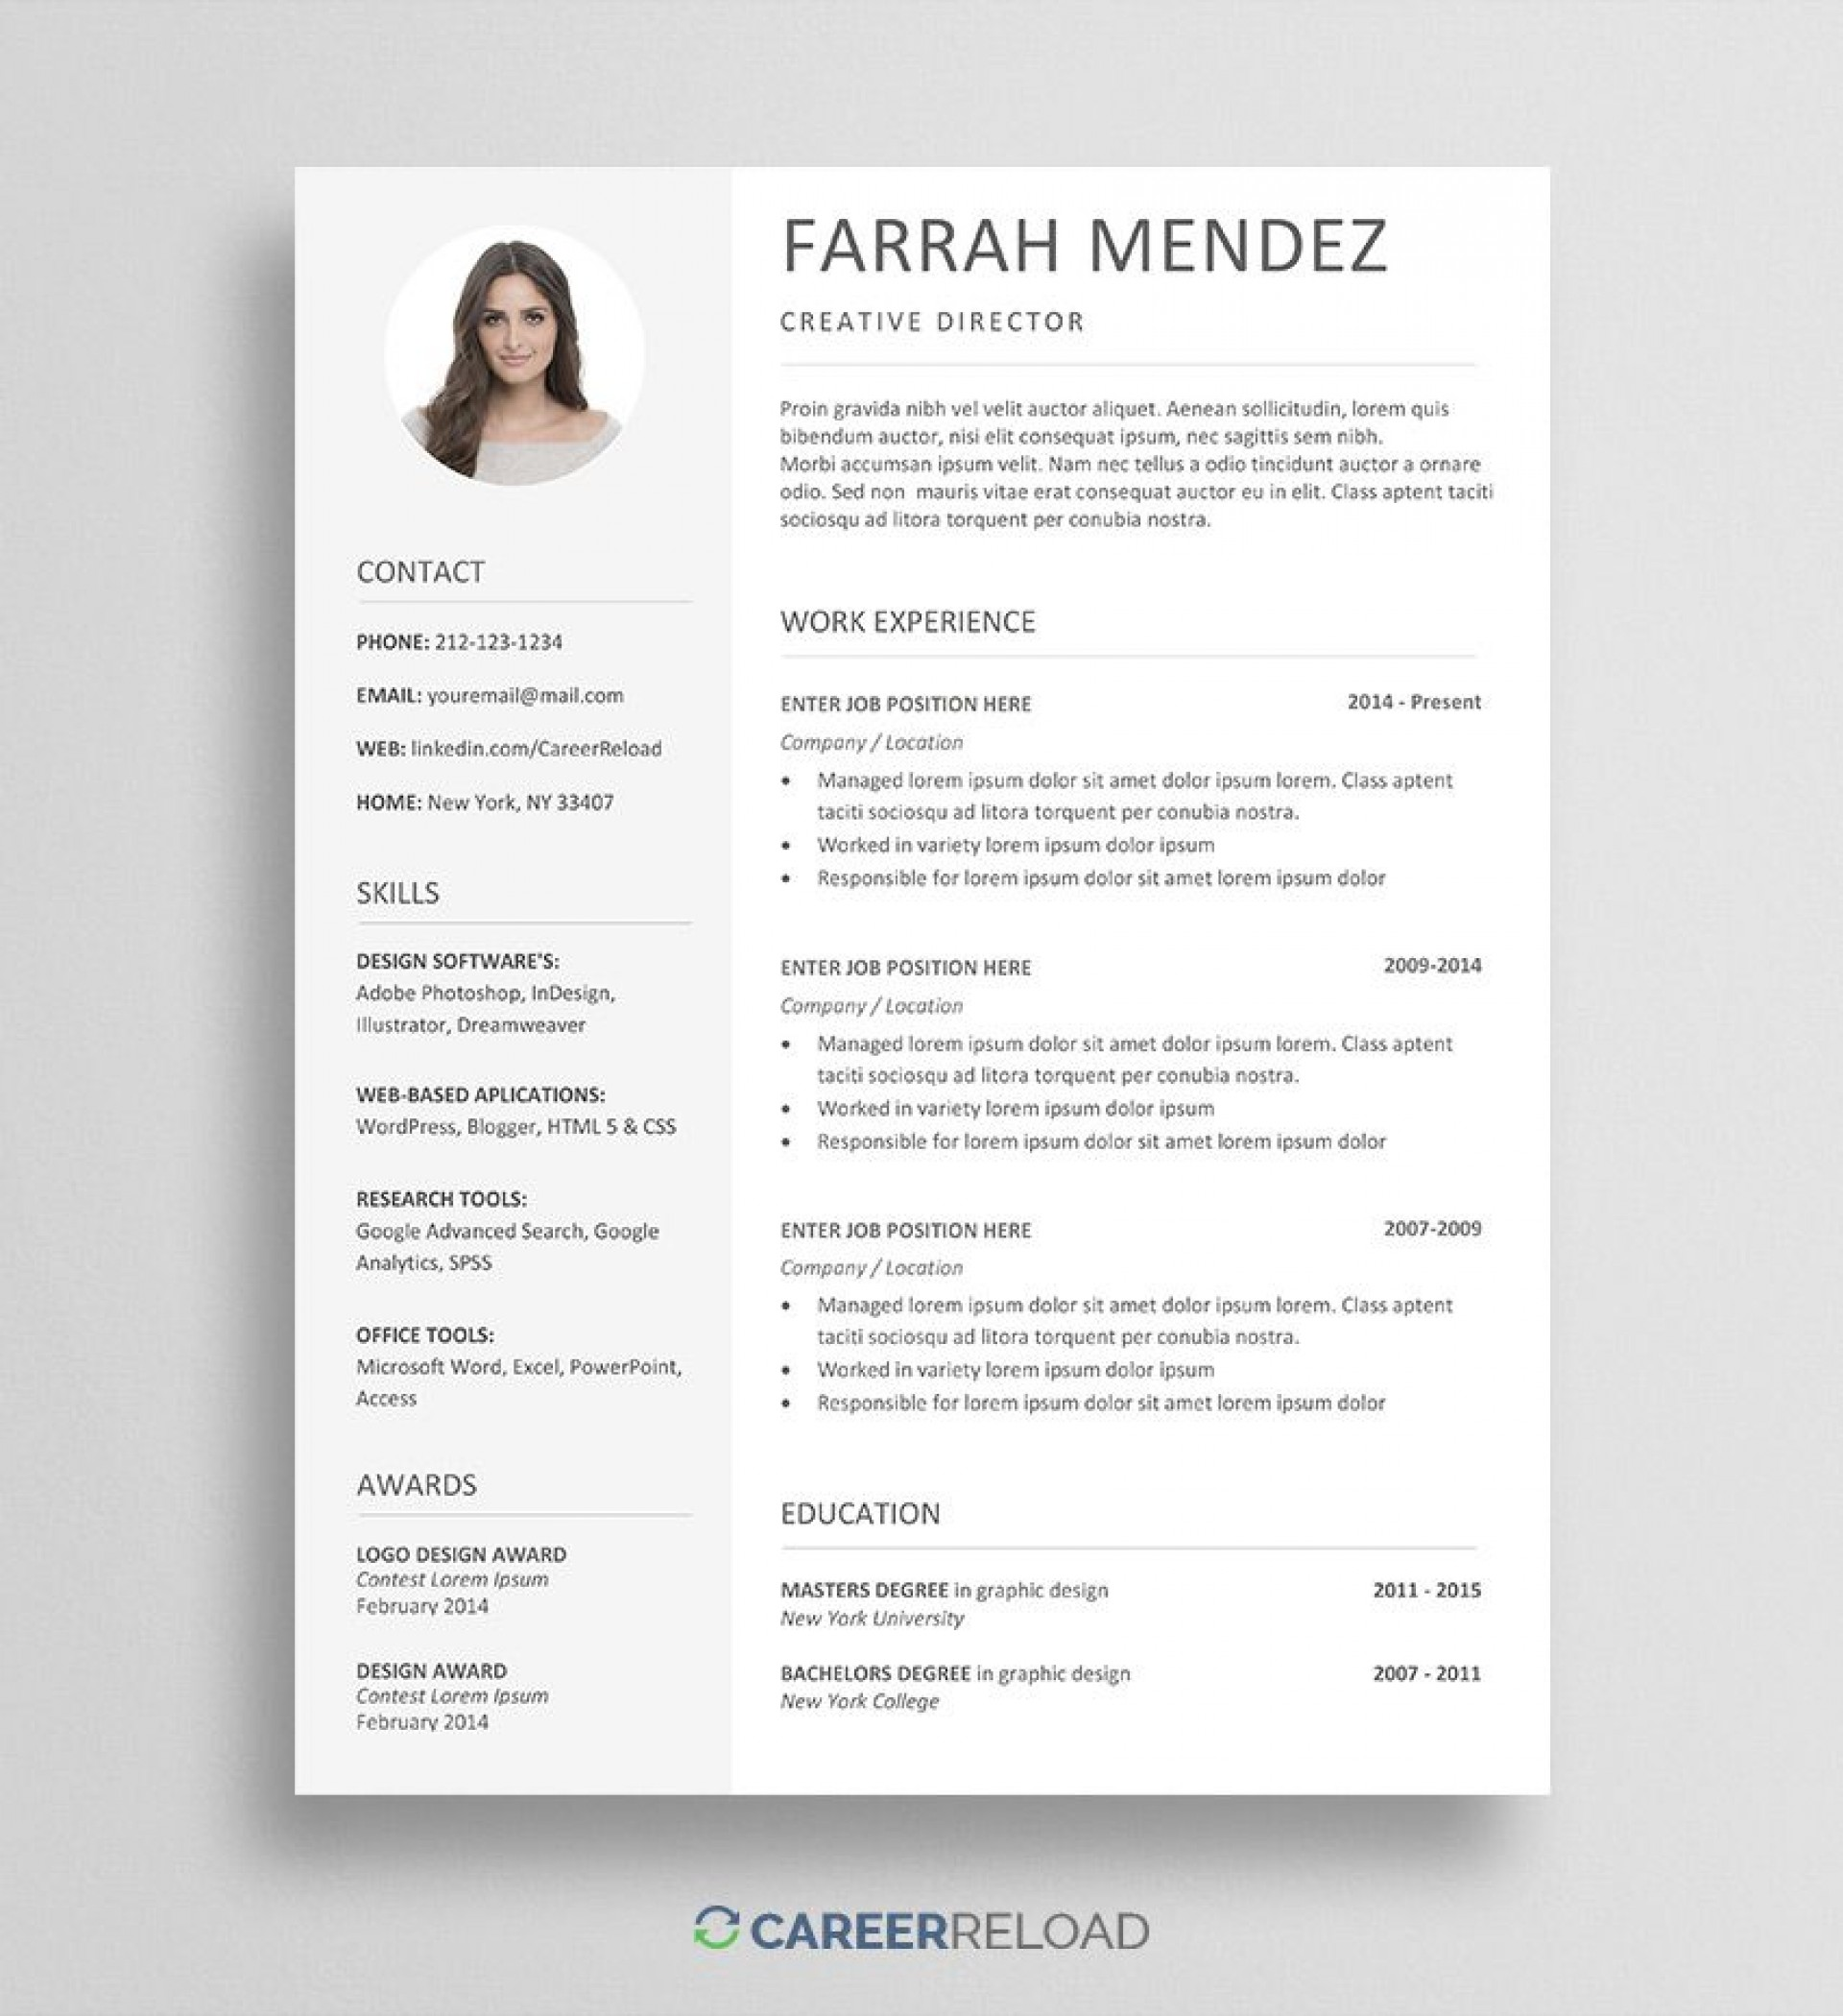 002 Formidable Download Resume Sample In Word Format Design  Driver Cv Free Best Template1920